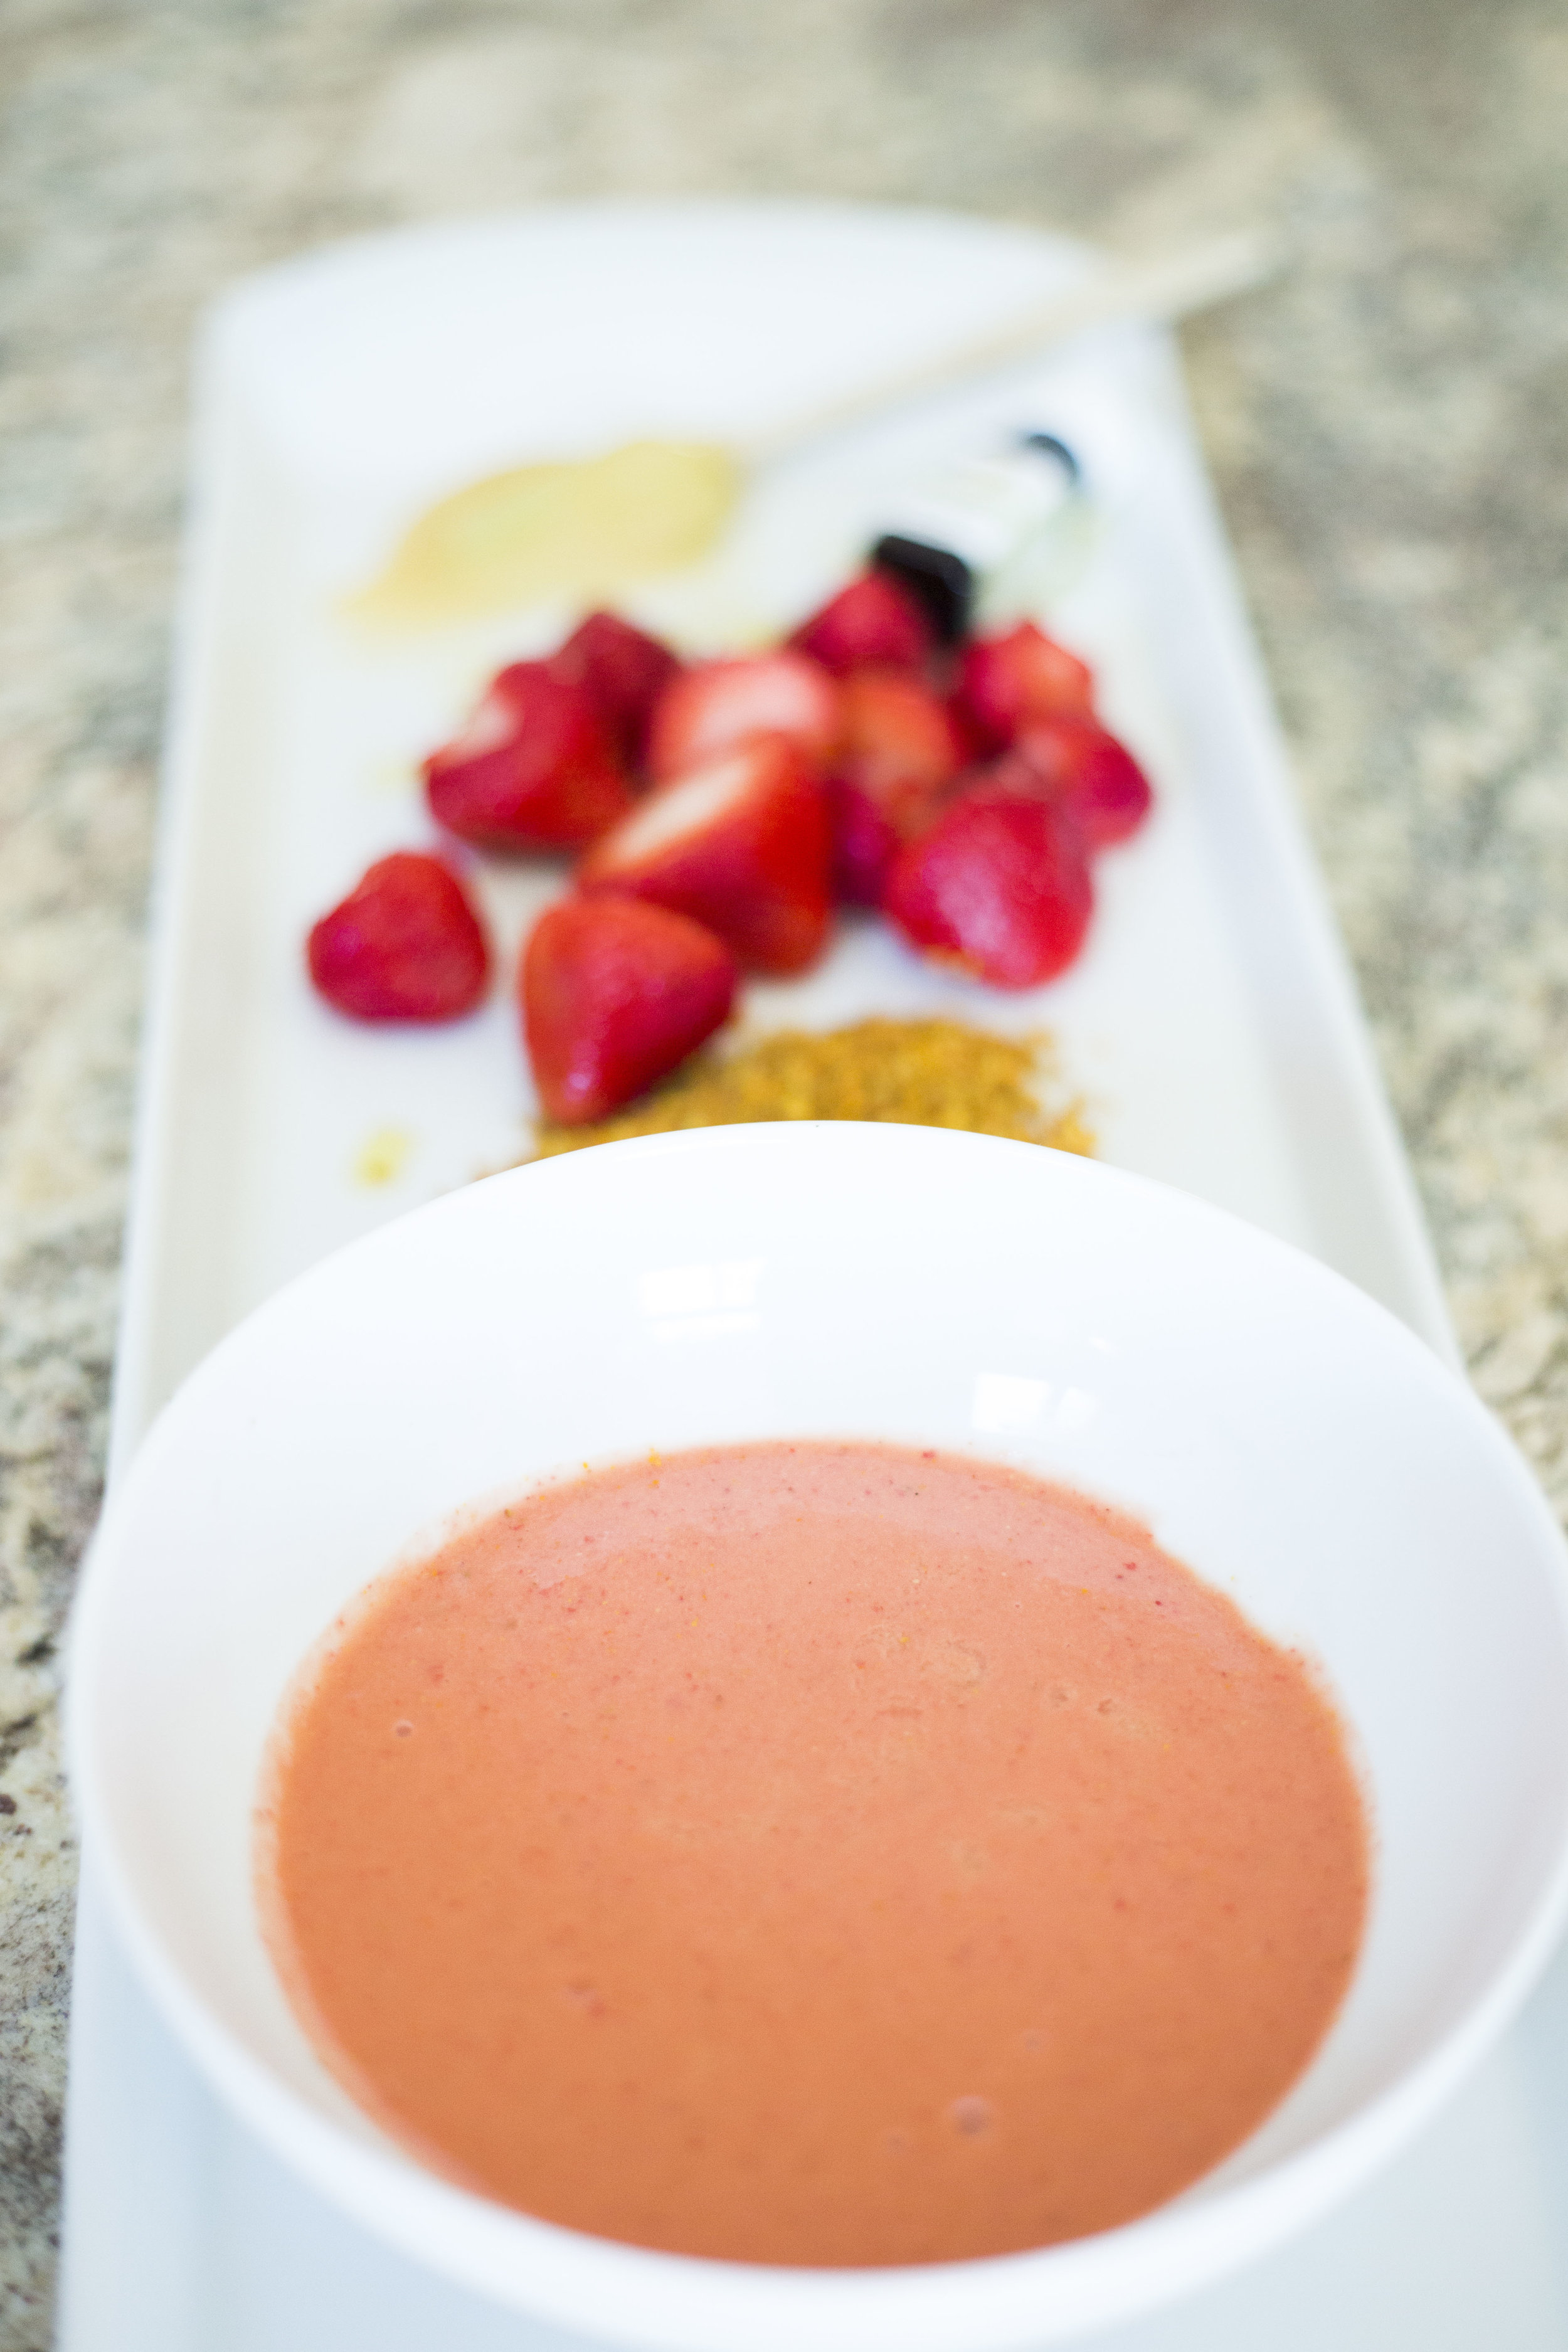 Adapted from the Strawberry and Bee Pollen Facial at the Spa at Andaz Wall Street, in New York City.